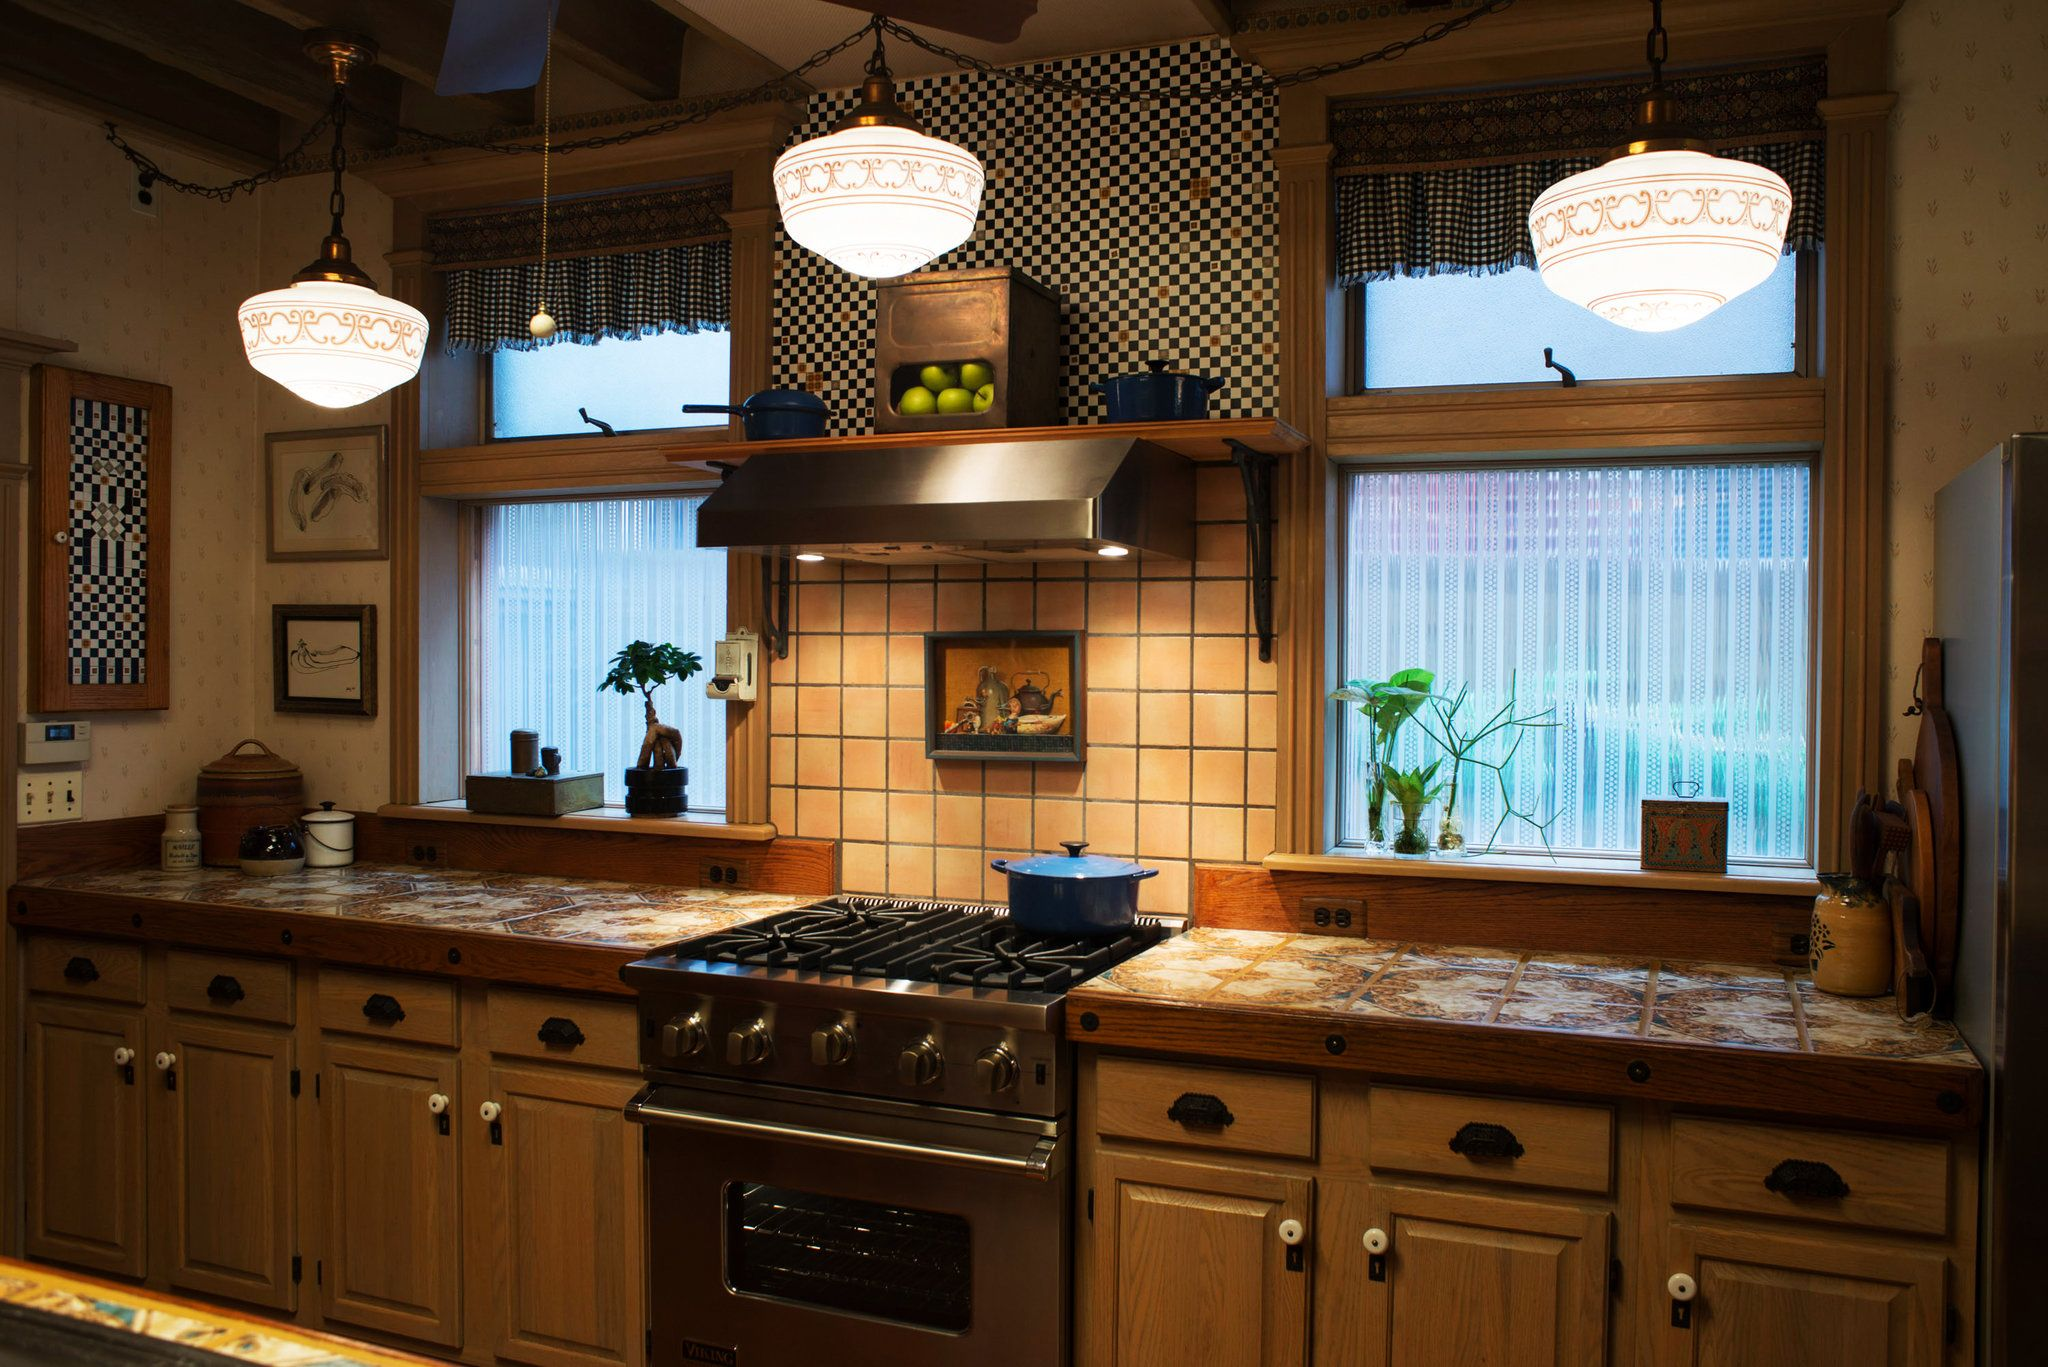 What You Get For 1 100 000 Tile Countertops Kitchen Countertops Mexican Tile Kitchen